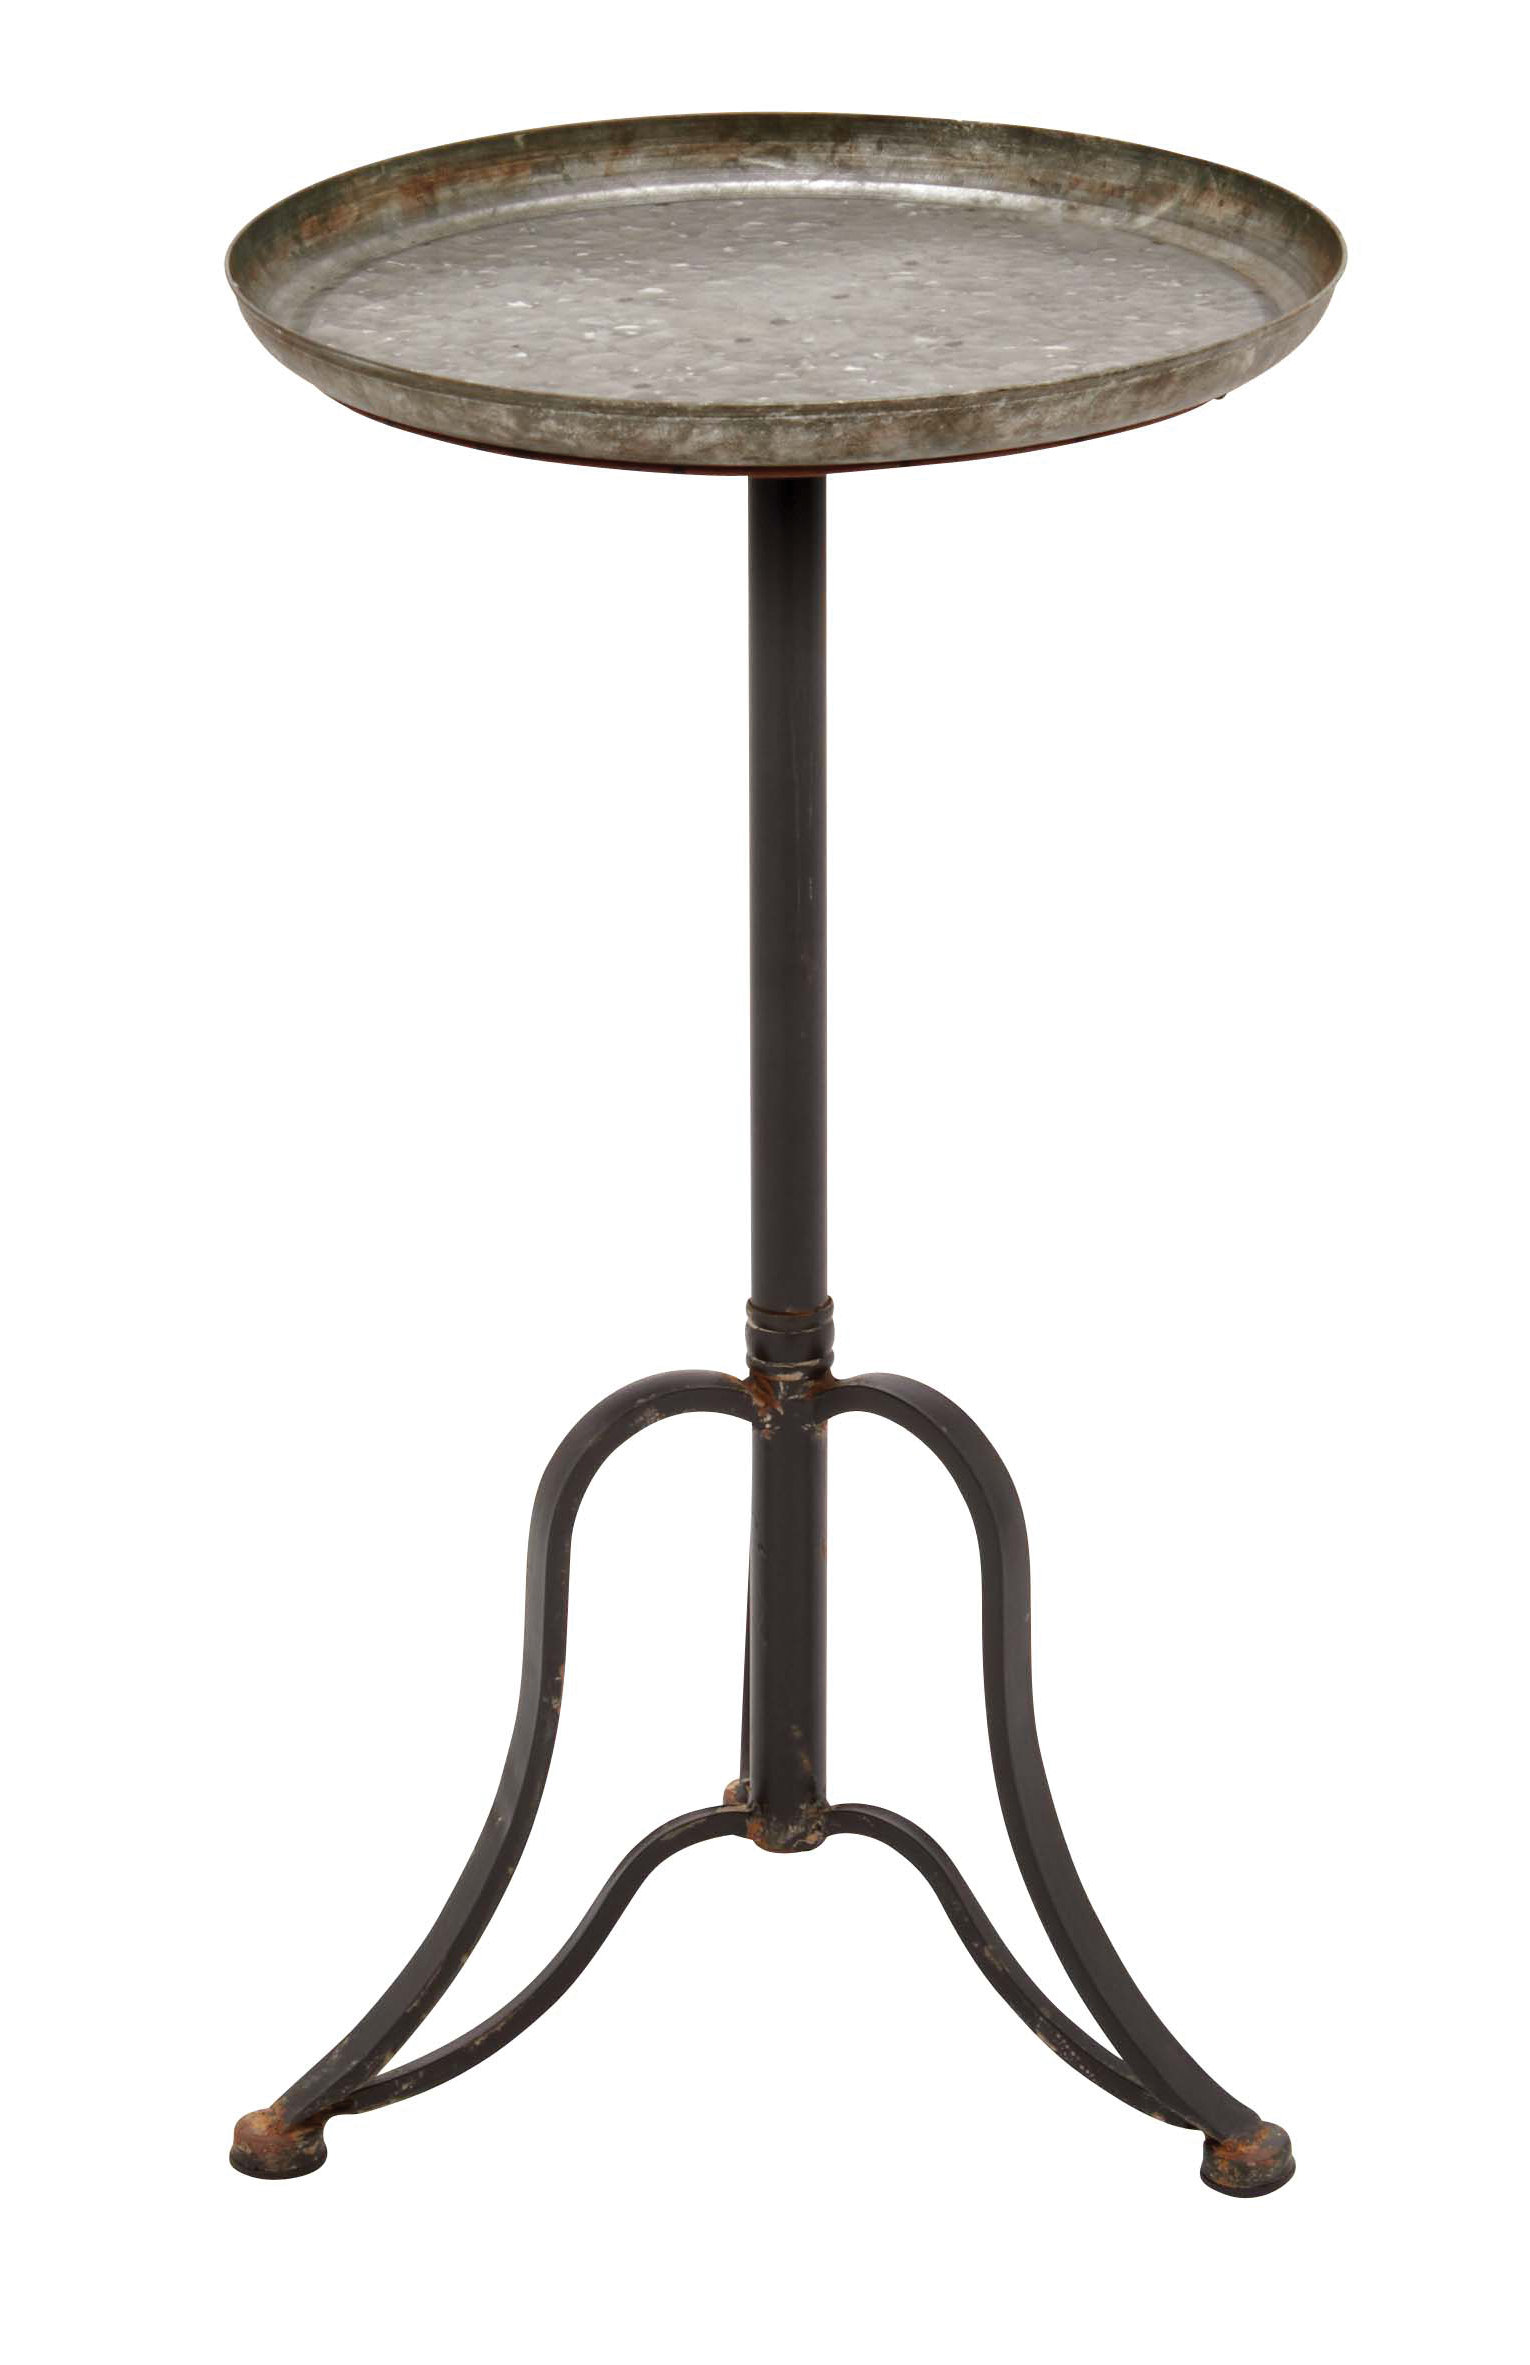 pearl metal end table reviews joss main eyelet accent nautical ceiling fans with lights average coffee height trestle legs large barn door dining room patio beer cooler kitchen